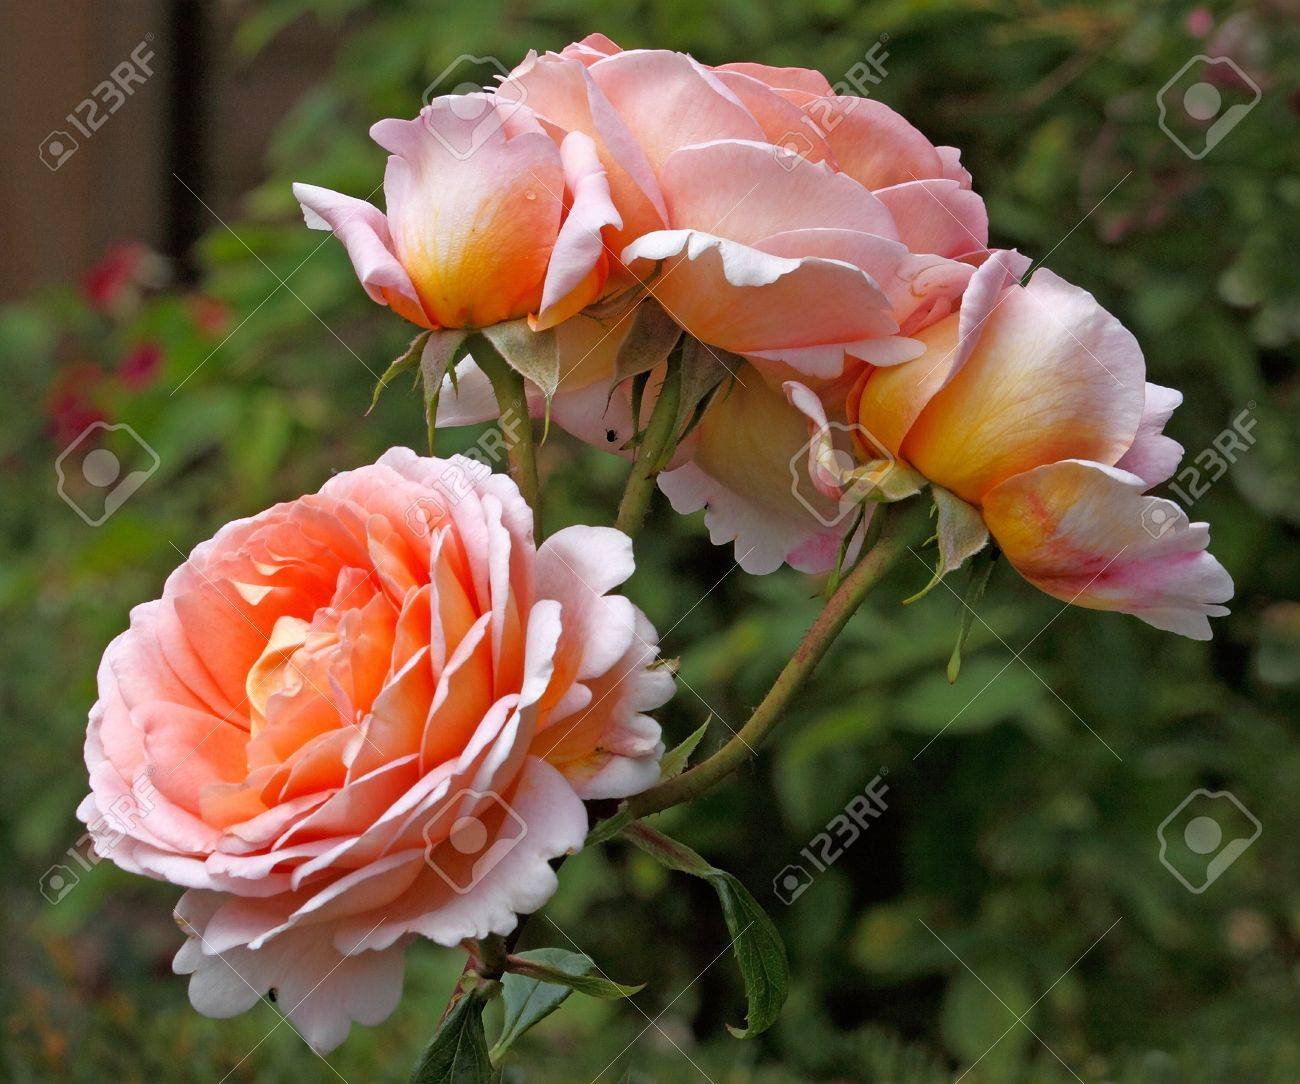 Cosmopolitan Can Grow Up To About Five Feet Abraham Darby Rose Has Blooms That Have Shades Apricot Stock Photo Abraham Darby Rose Has Blooms That Have Shades And Yellow houzz-02 Abraham Darby Rose